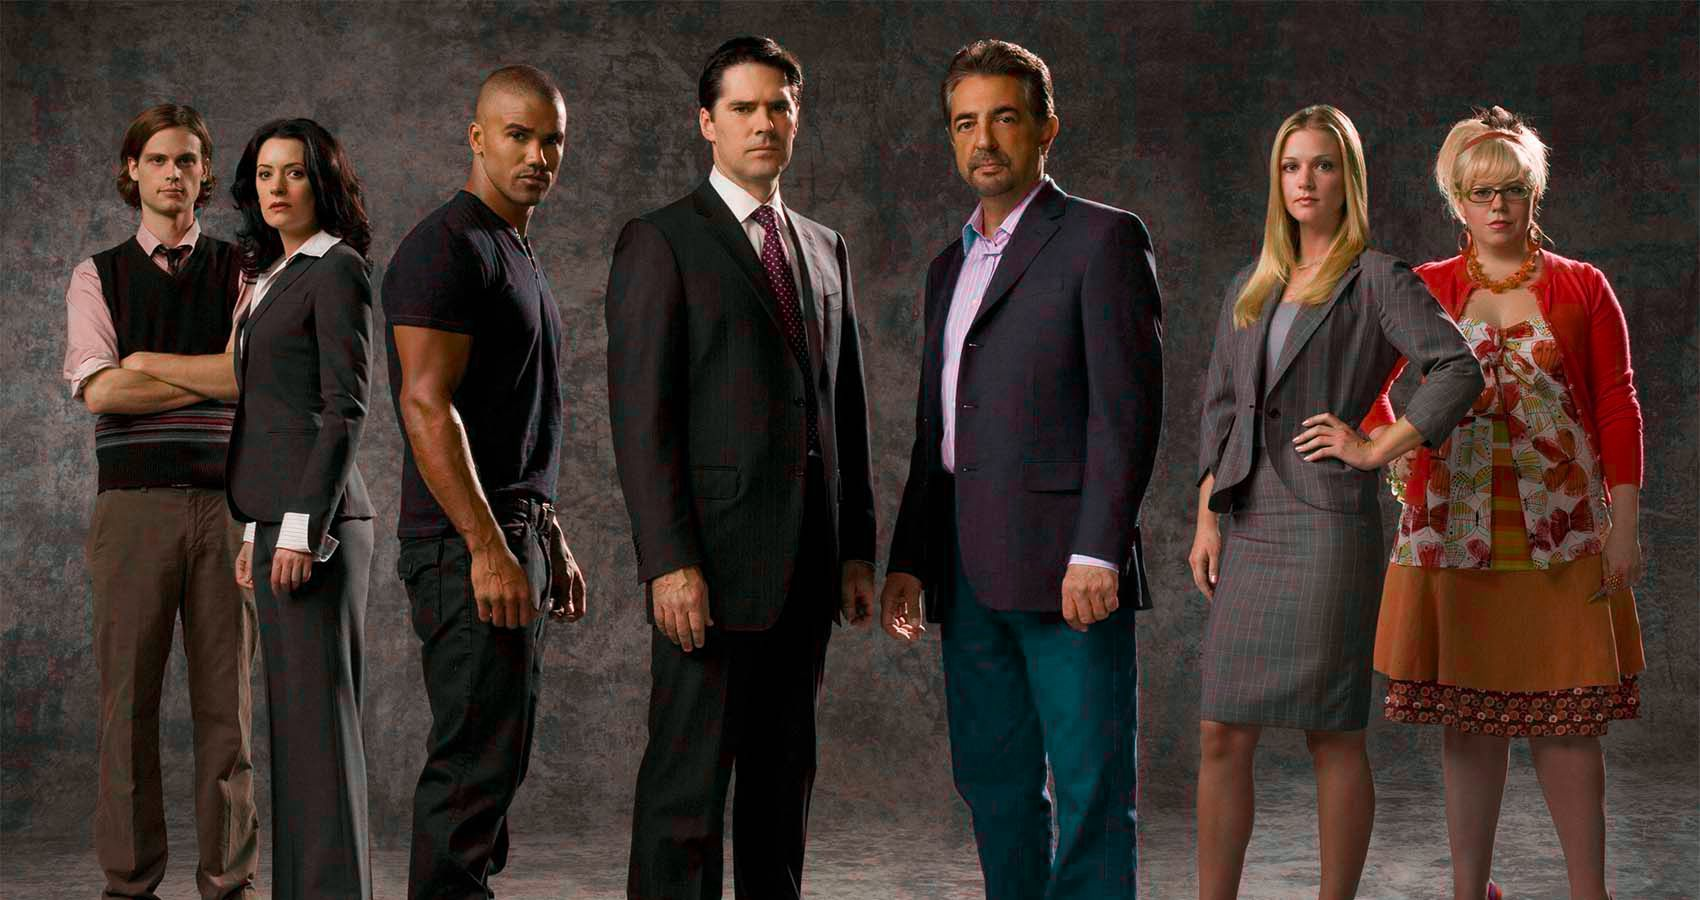 Sat 1 Criminal Minds